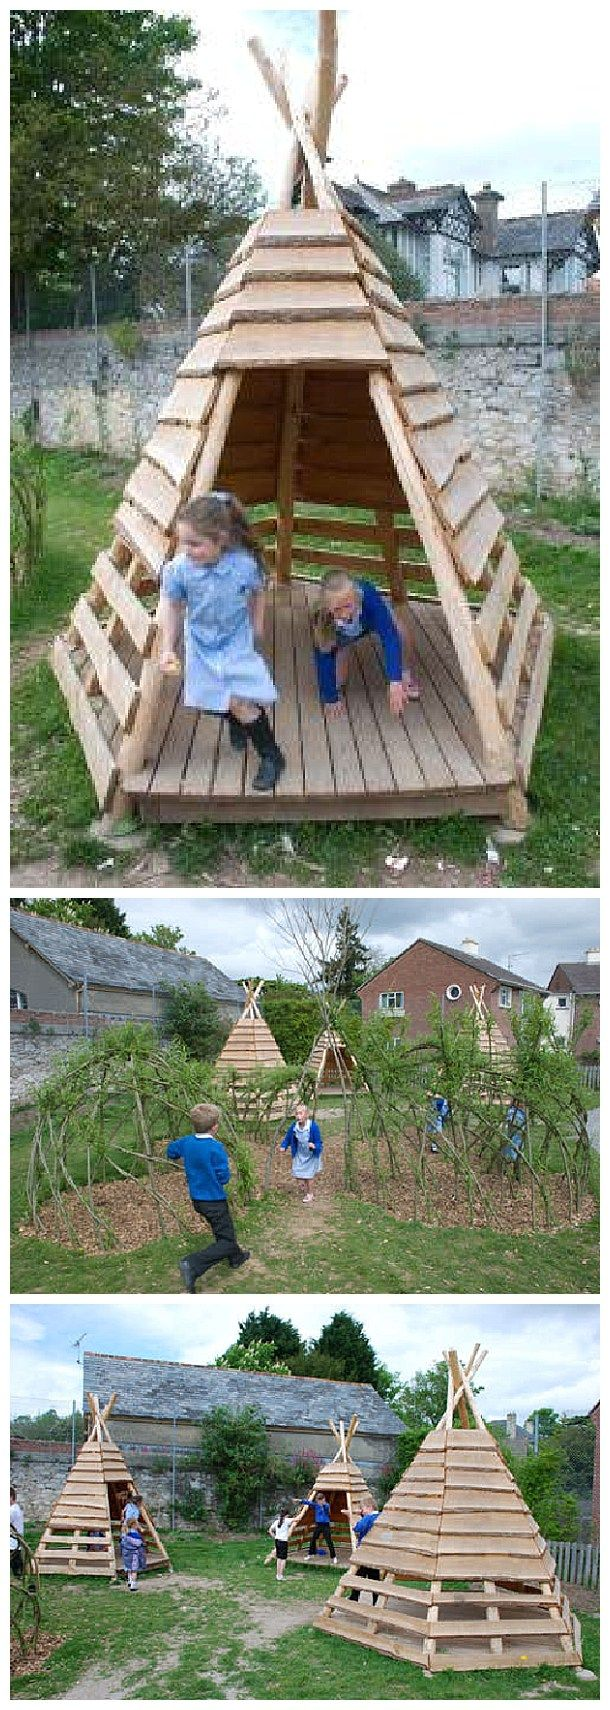 Pallet projects diy outdoor teepee for a kids playground or the pallet projects diy outdoor teepee for a kids playground or the backyard do it yourself woodworking tutorial via 1001 pallets solutioingenieria Choice Image